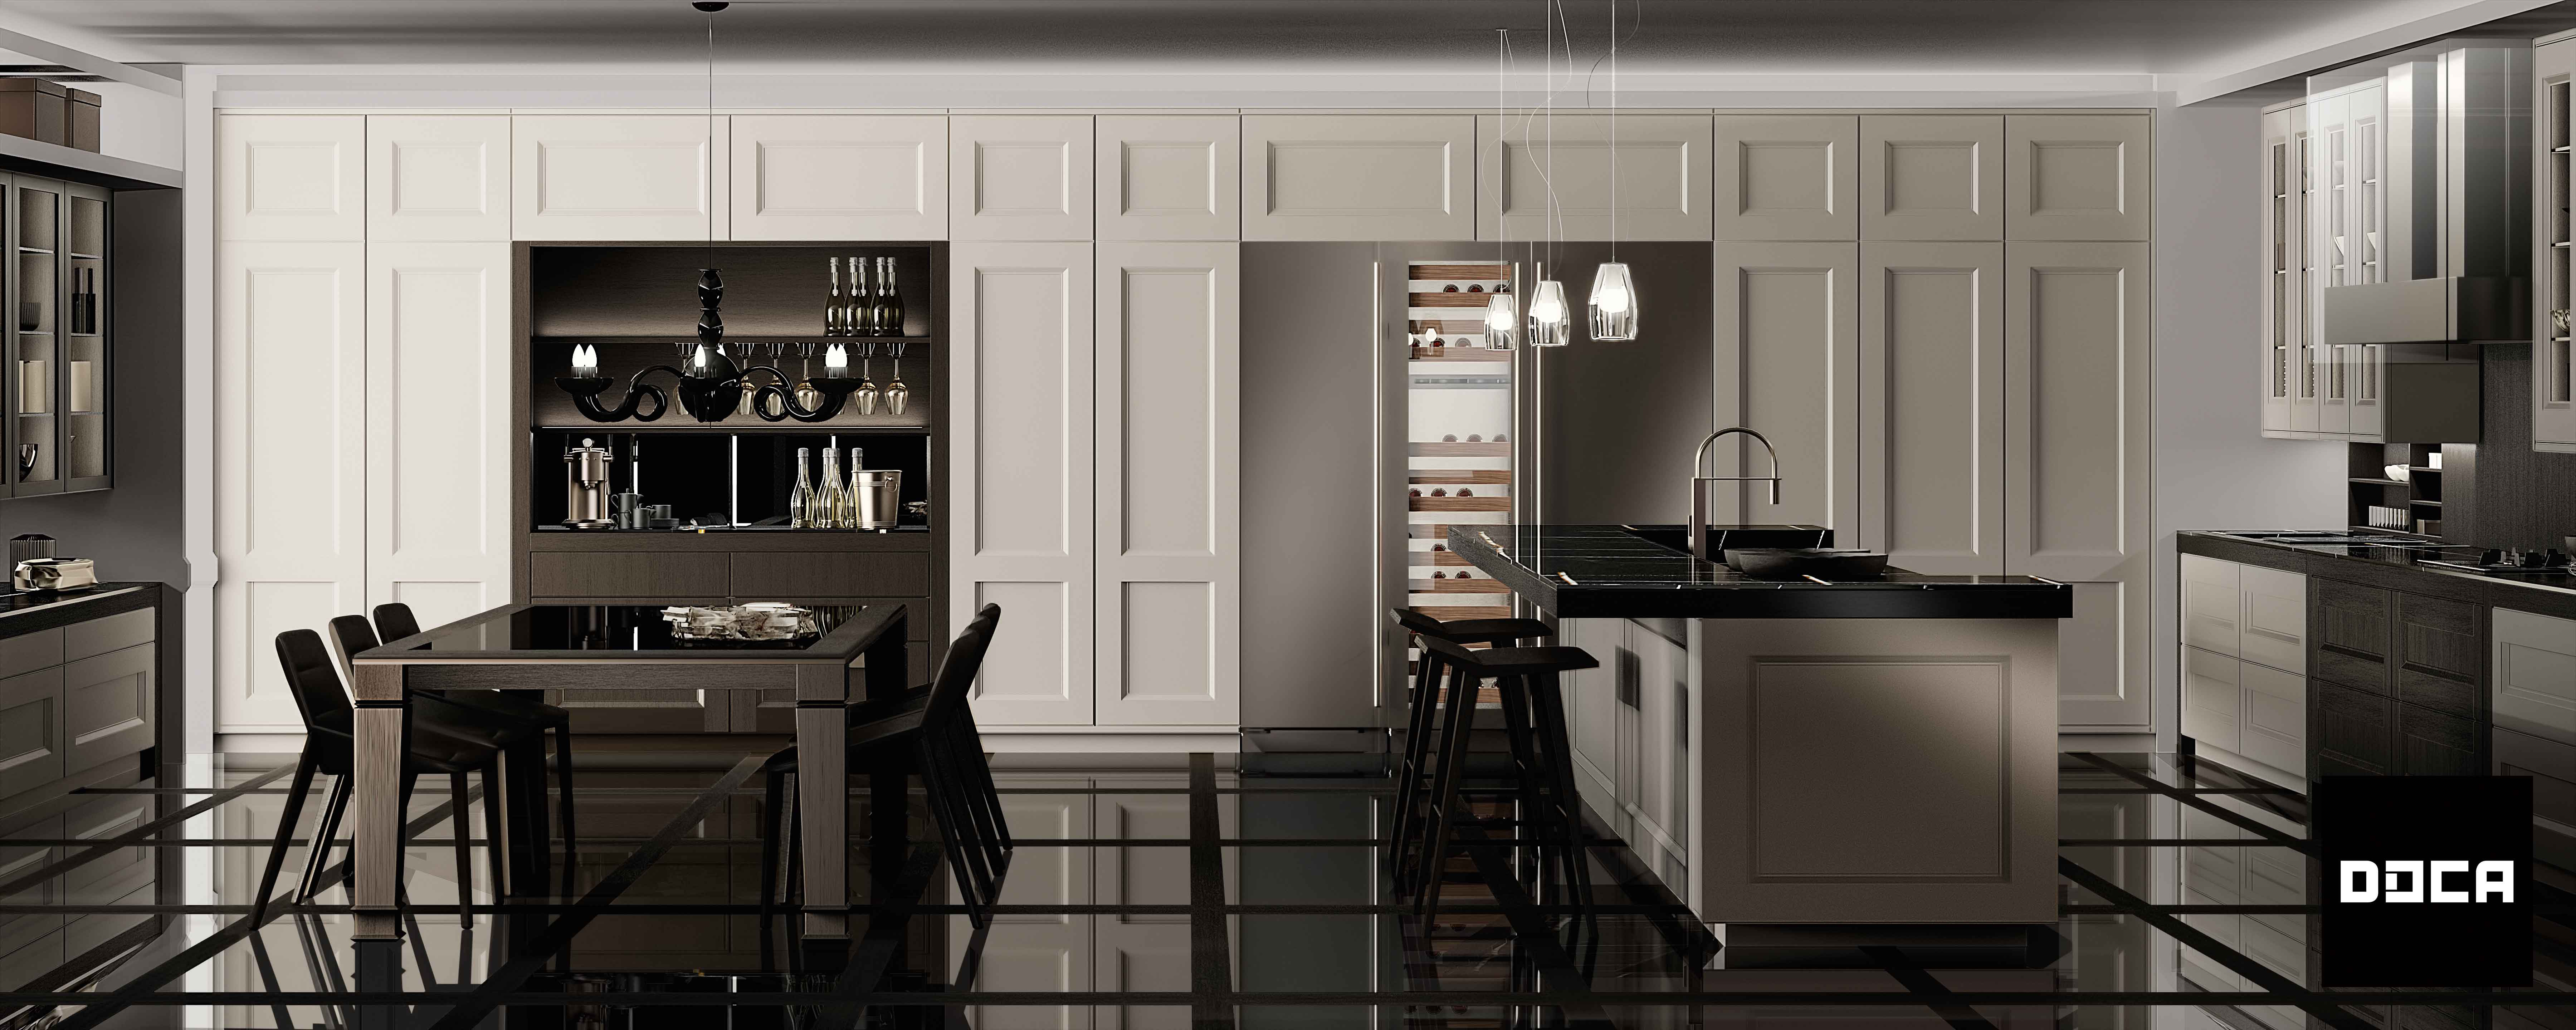 Cocinas Doca 3 Timeless Luxury Spanish Kitchen Designs By Doca